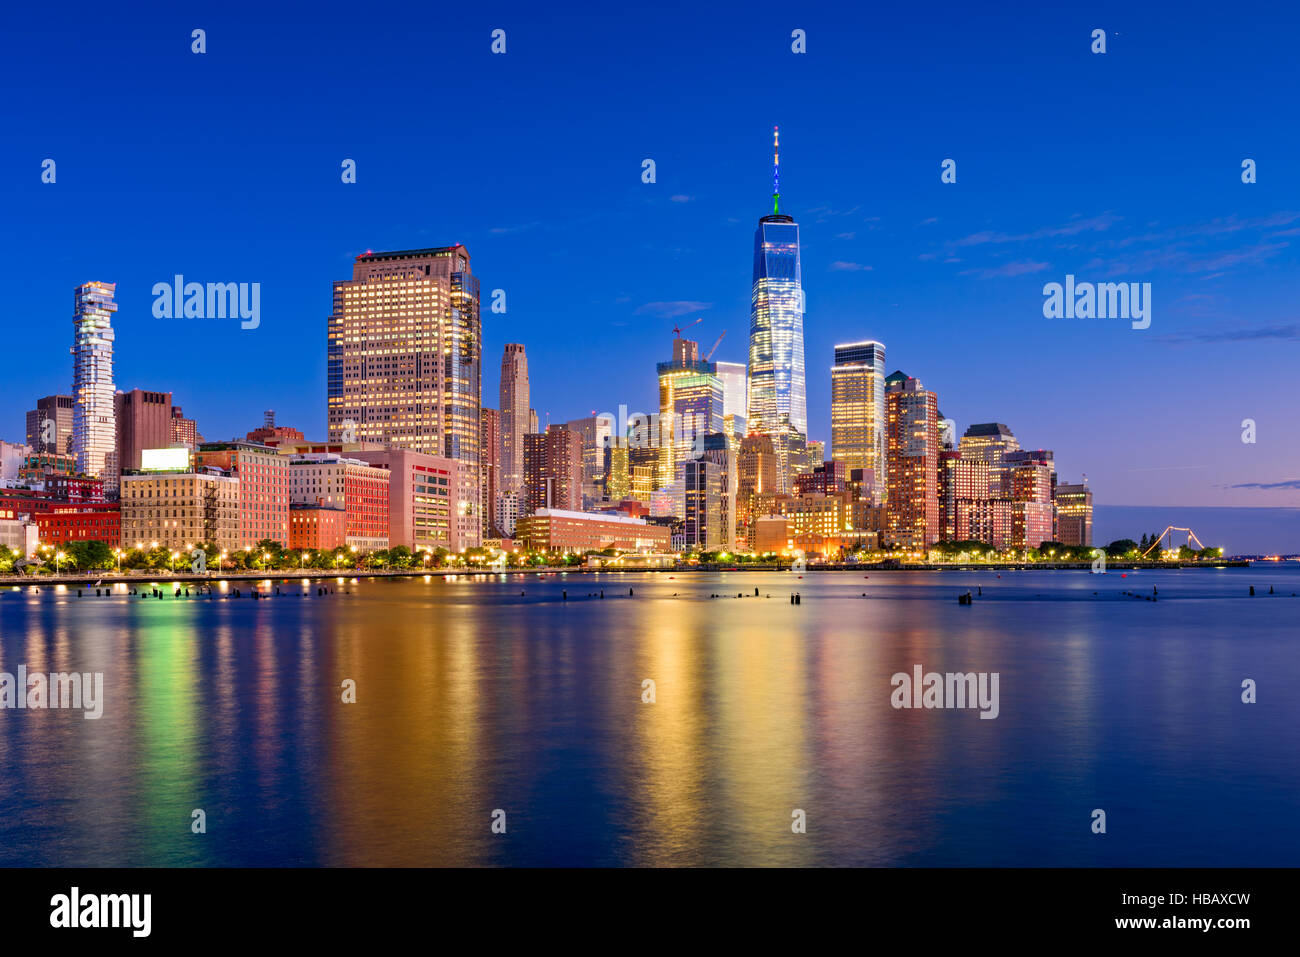 New York City financial district skyline at night on the Hudson River. - Stock Image